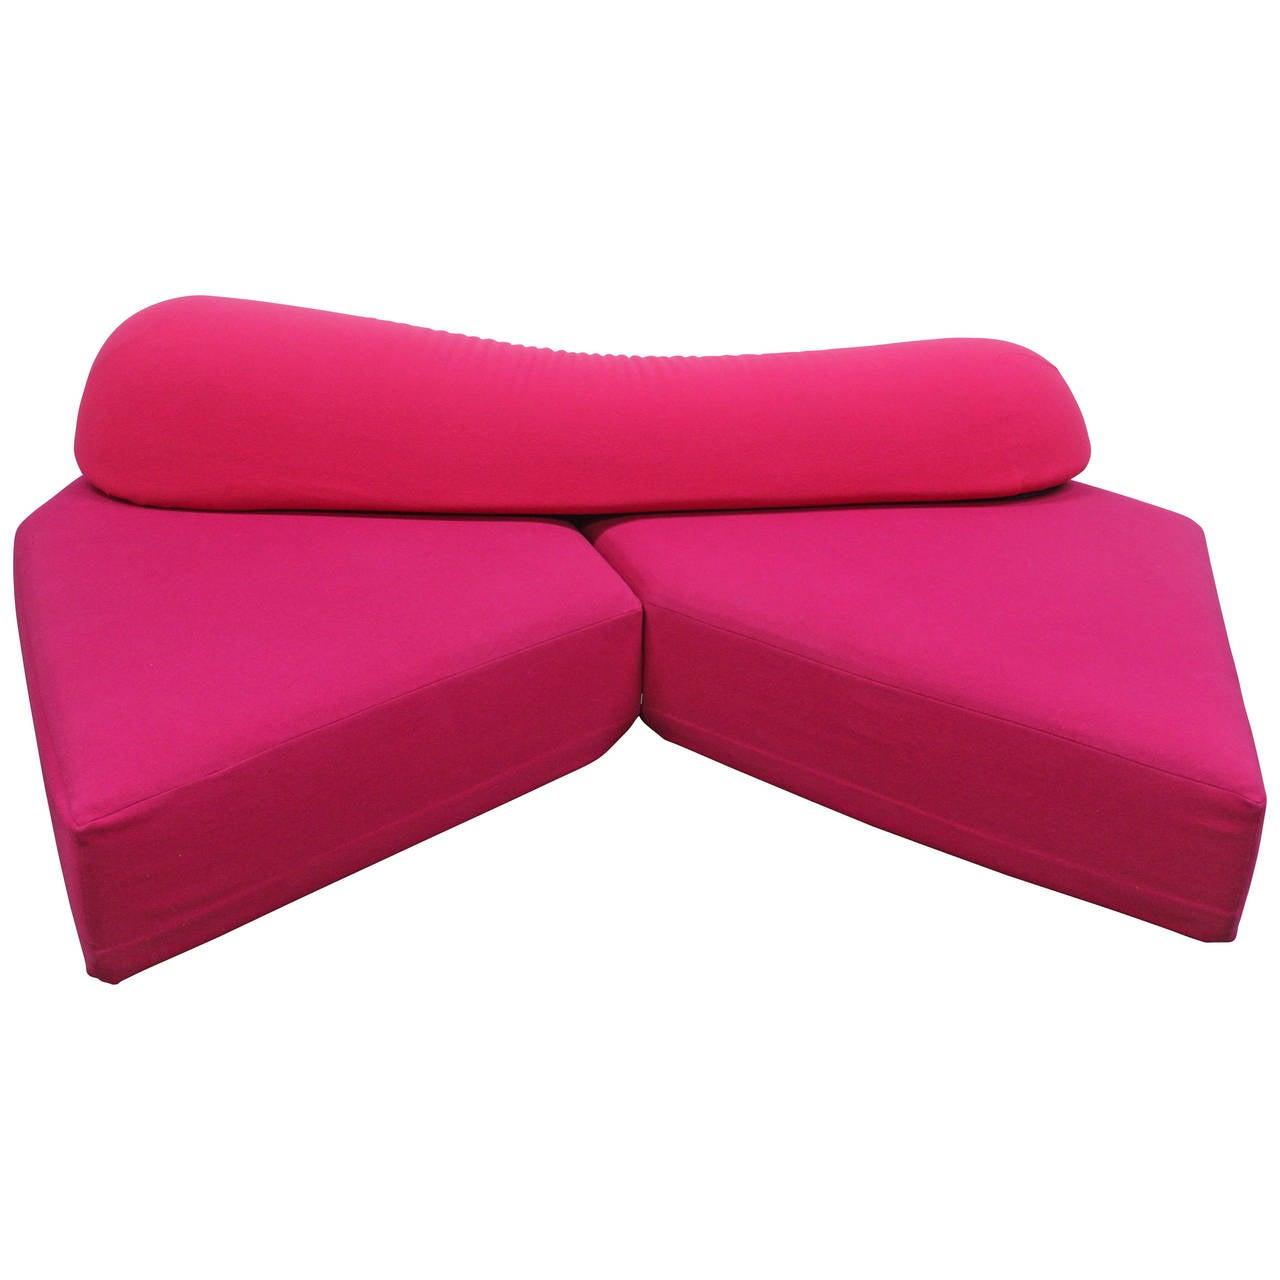 "Edra "" The Rocks"" Sectional Sofa in Pink and Red Kvadrat by"